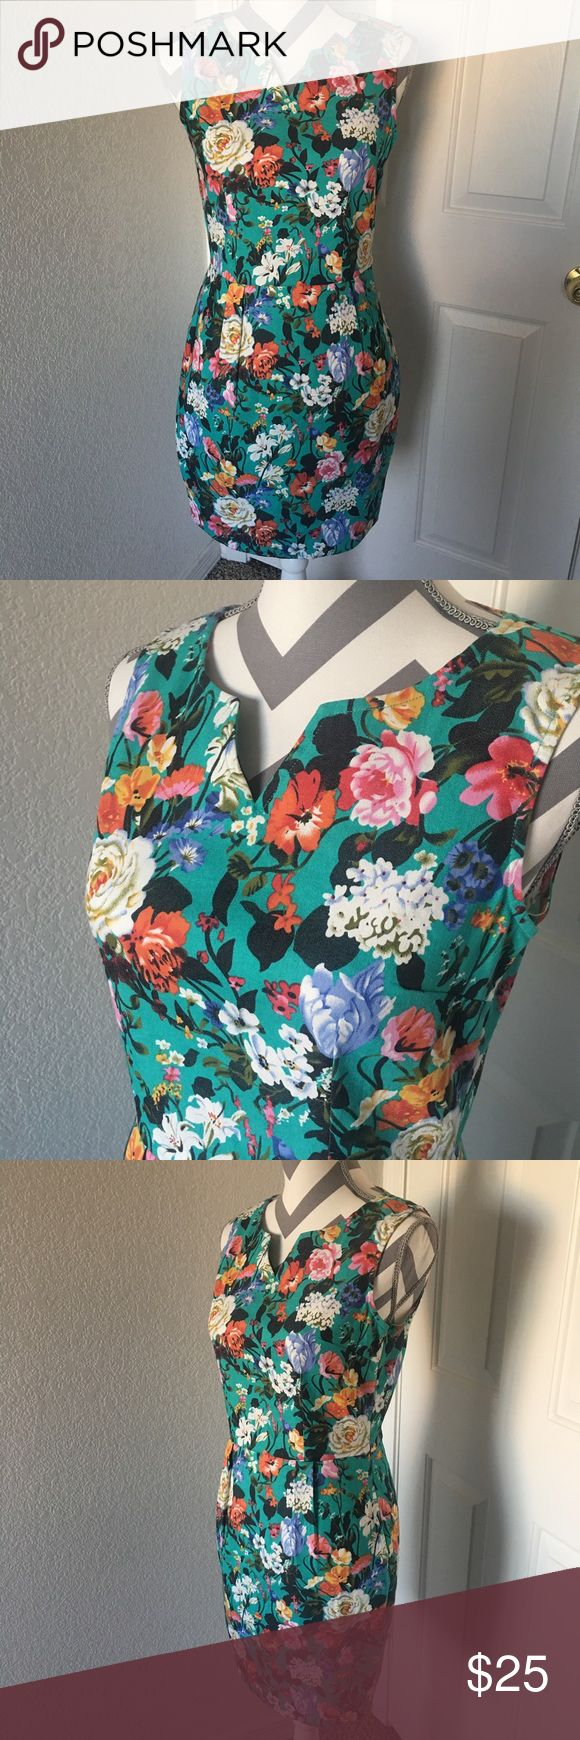 Sugar Hill Boutique Floral Dress Sugar Hill Boutique floral dress, size 6, has a discreet zipper on the side, polyester/elastane, pre owned and in good condition. Sugar Hill Boutique Dresses